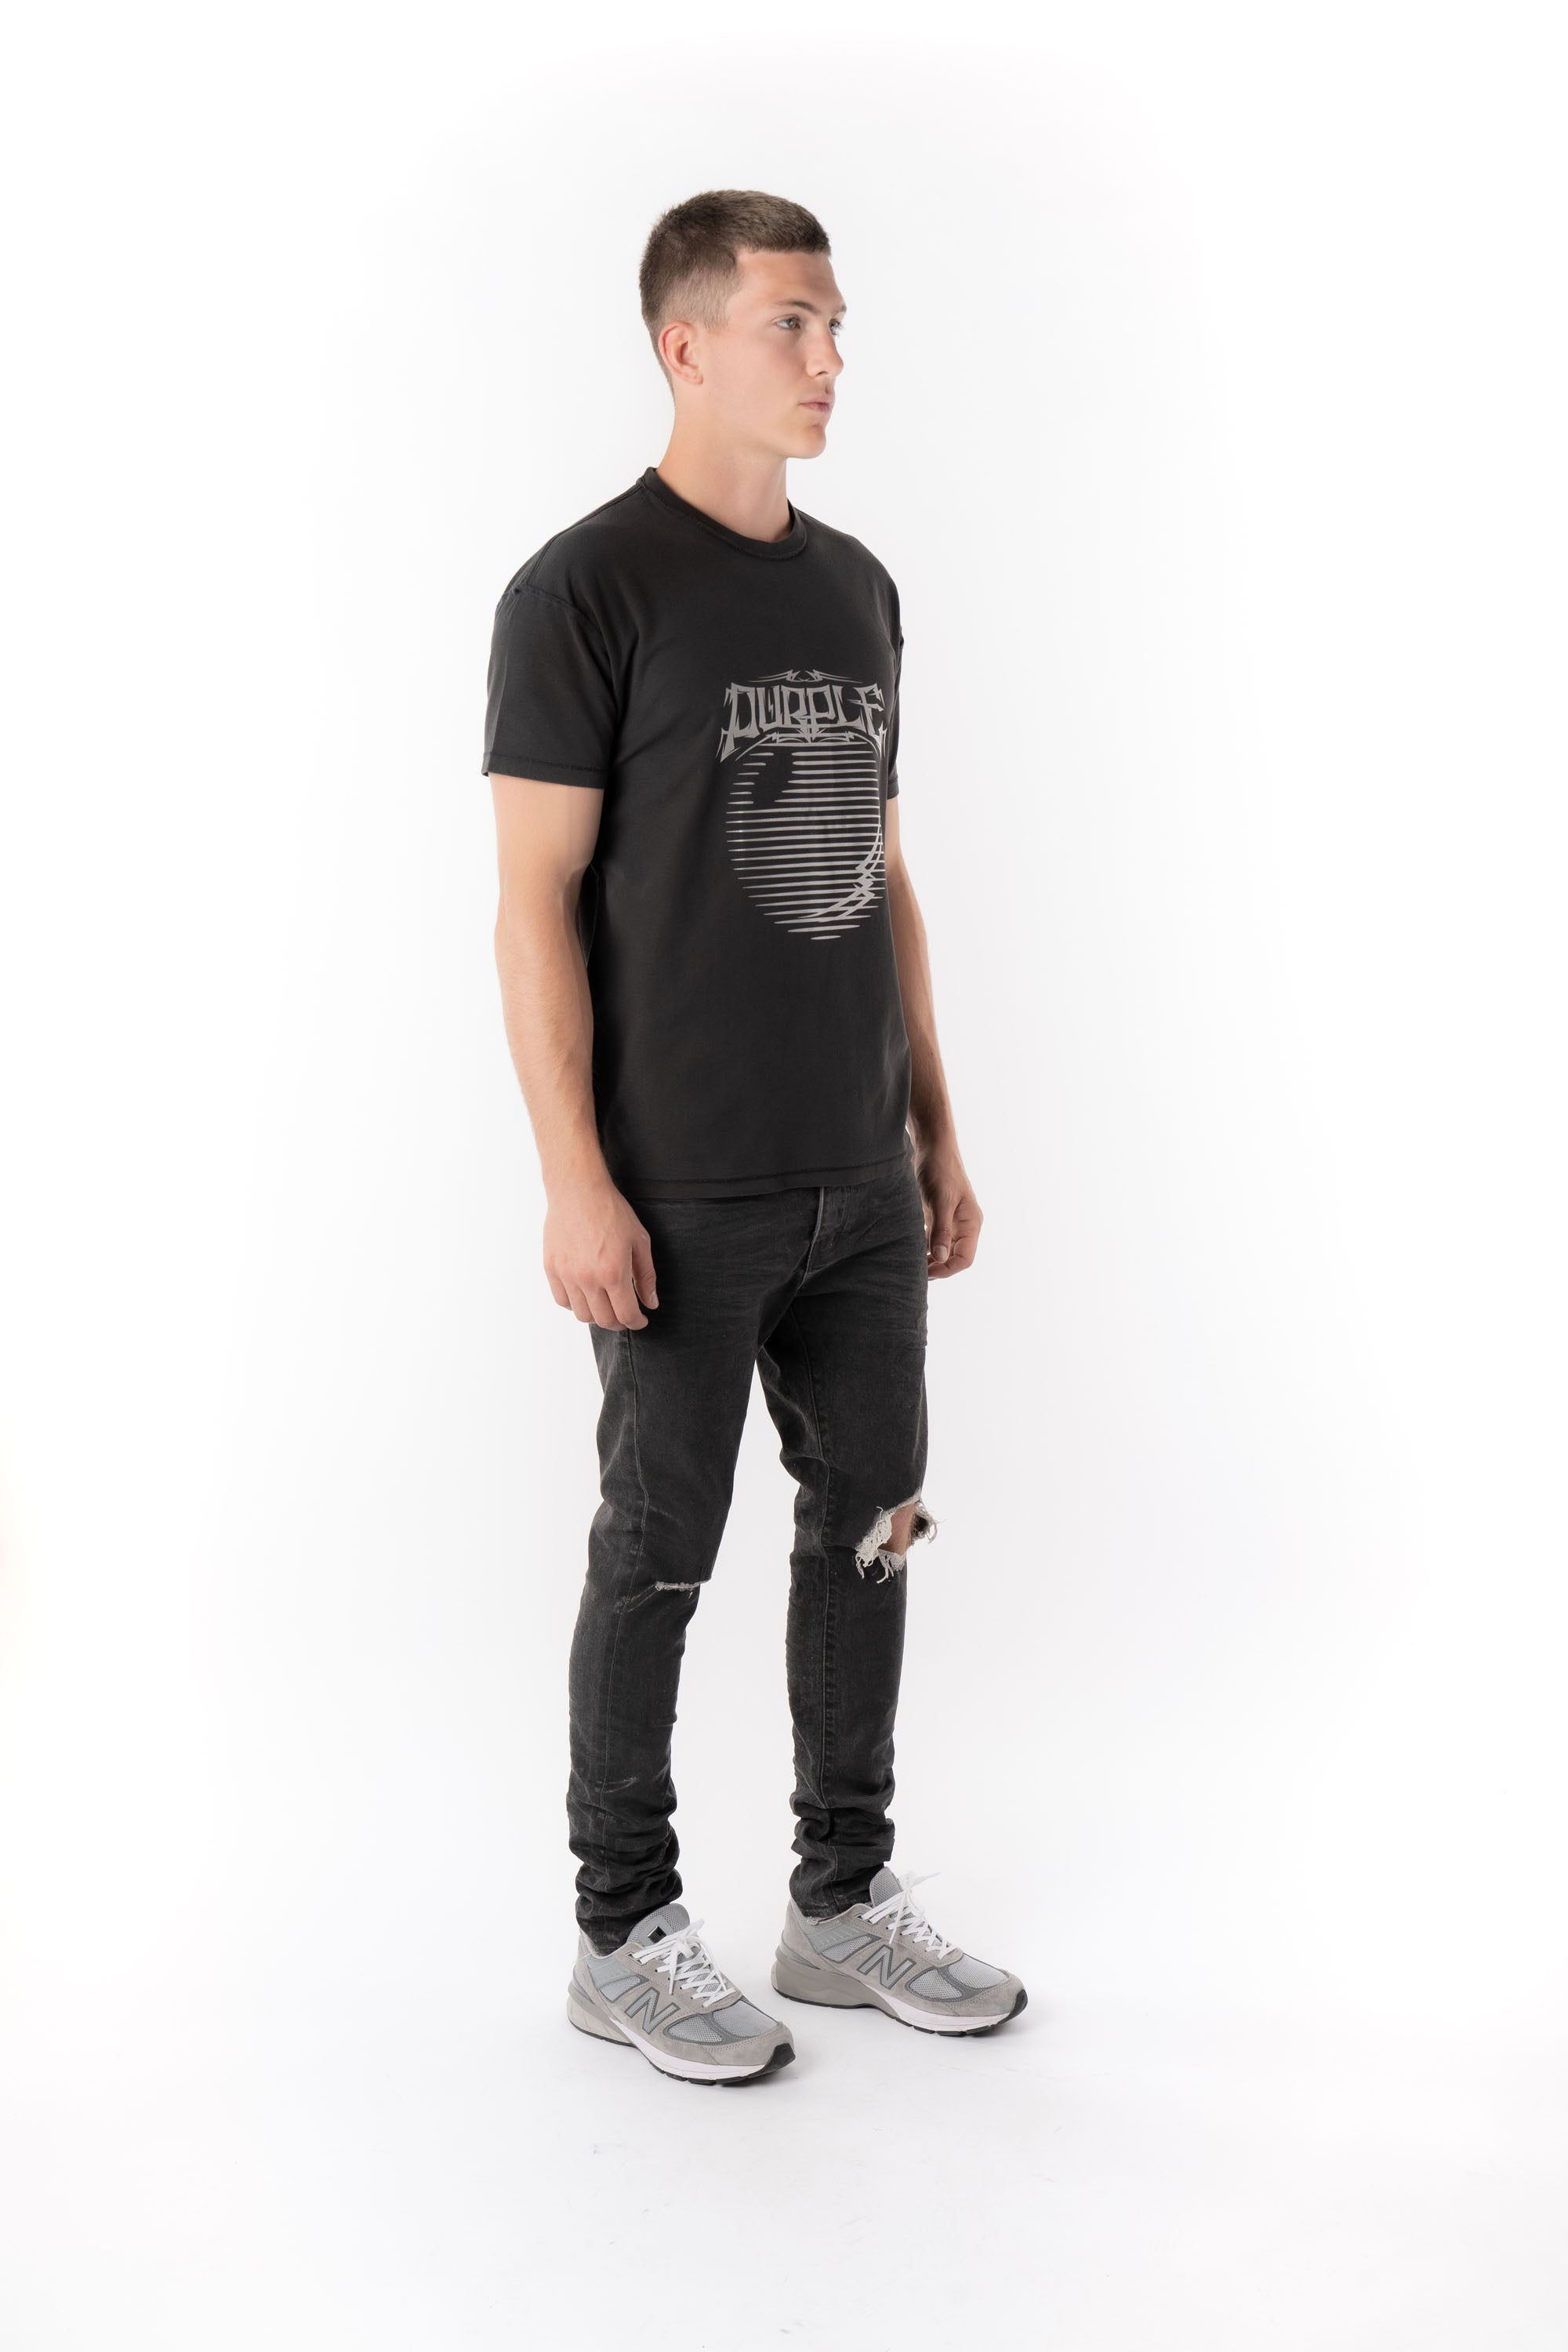 P101 RELAXED FIT - Asterism Black